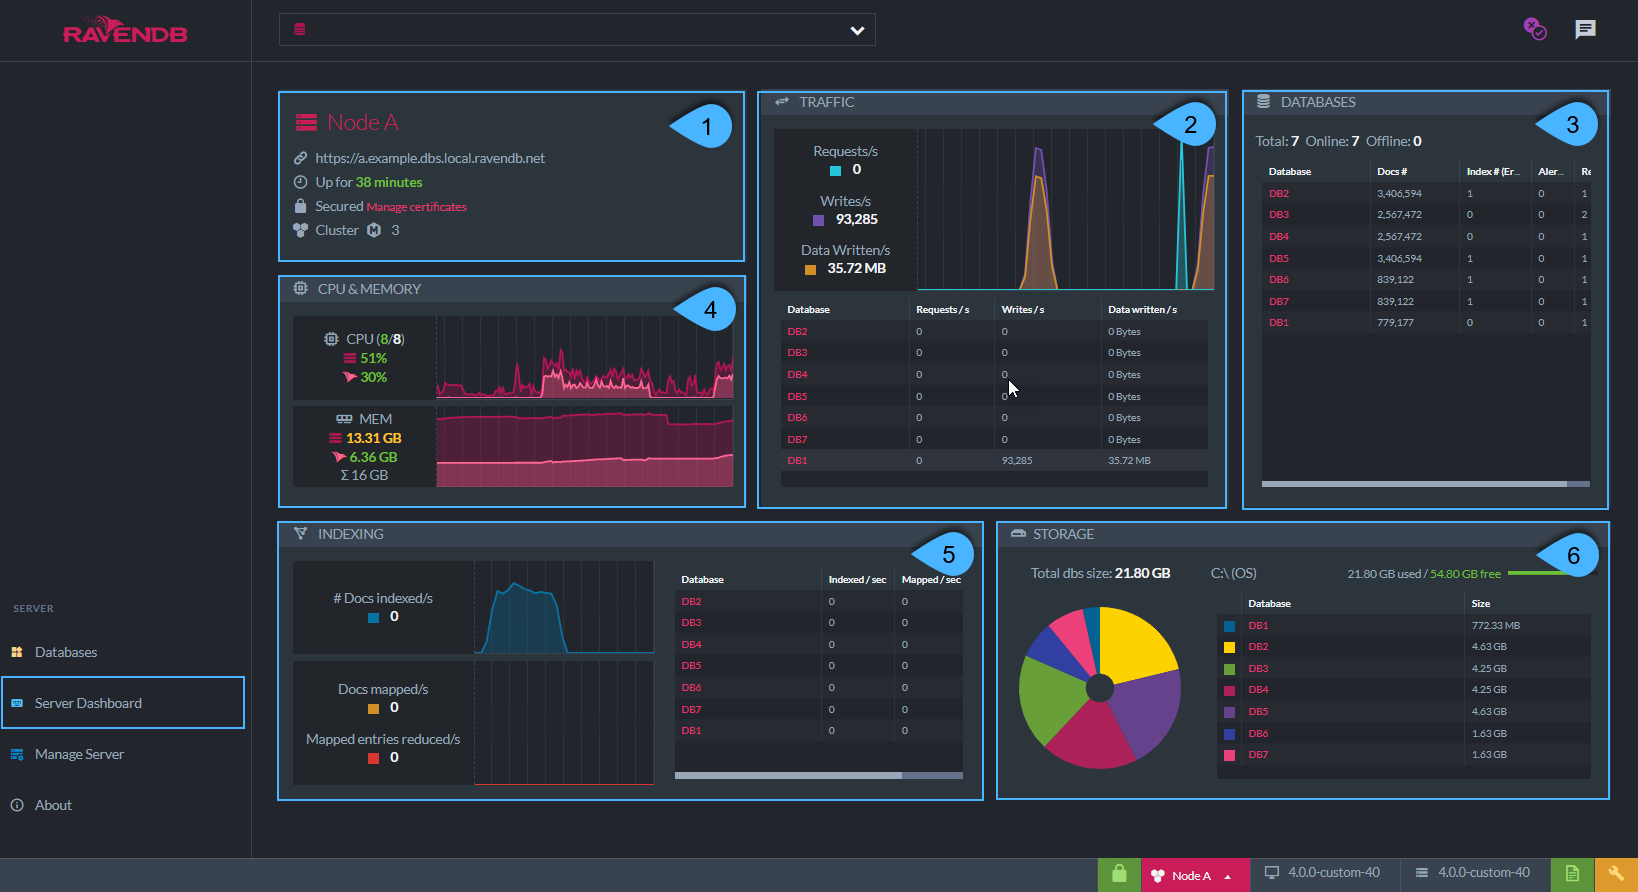 Figure 1. Server Dashboard